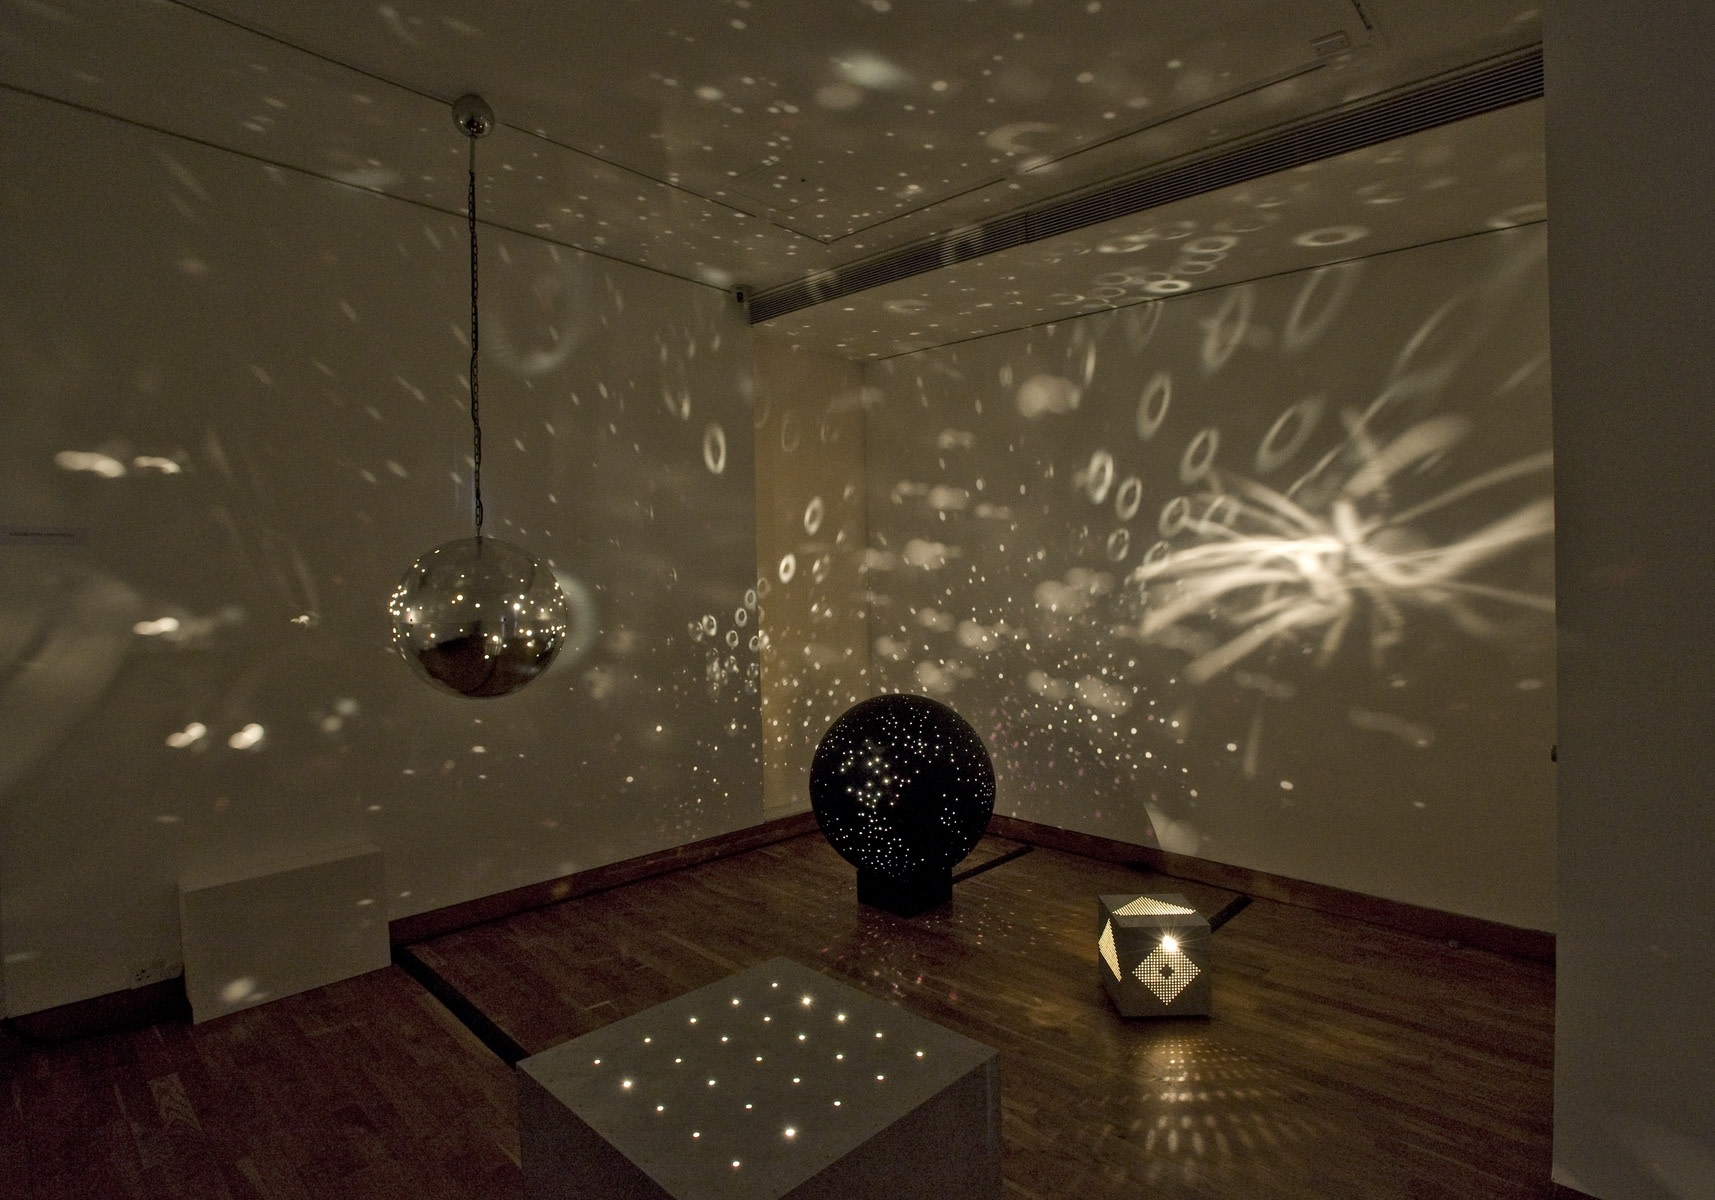 "<span class=""link fancybox-details-link""><a href=""/exhibitions/69/works/image_standalone168/"">View Detail Page</a></span><p>OTTO PIENE 